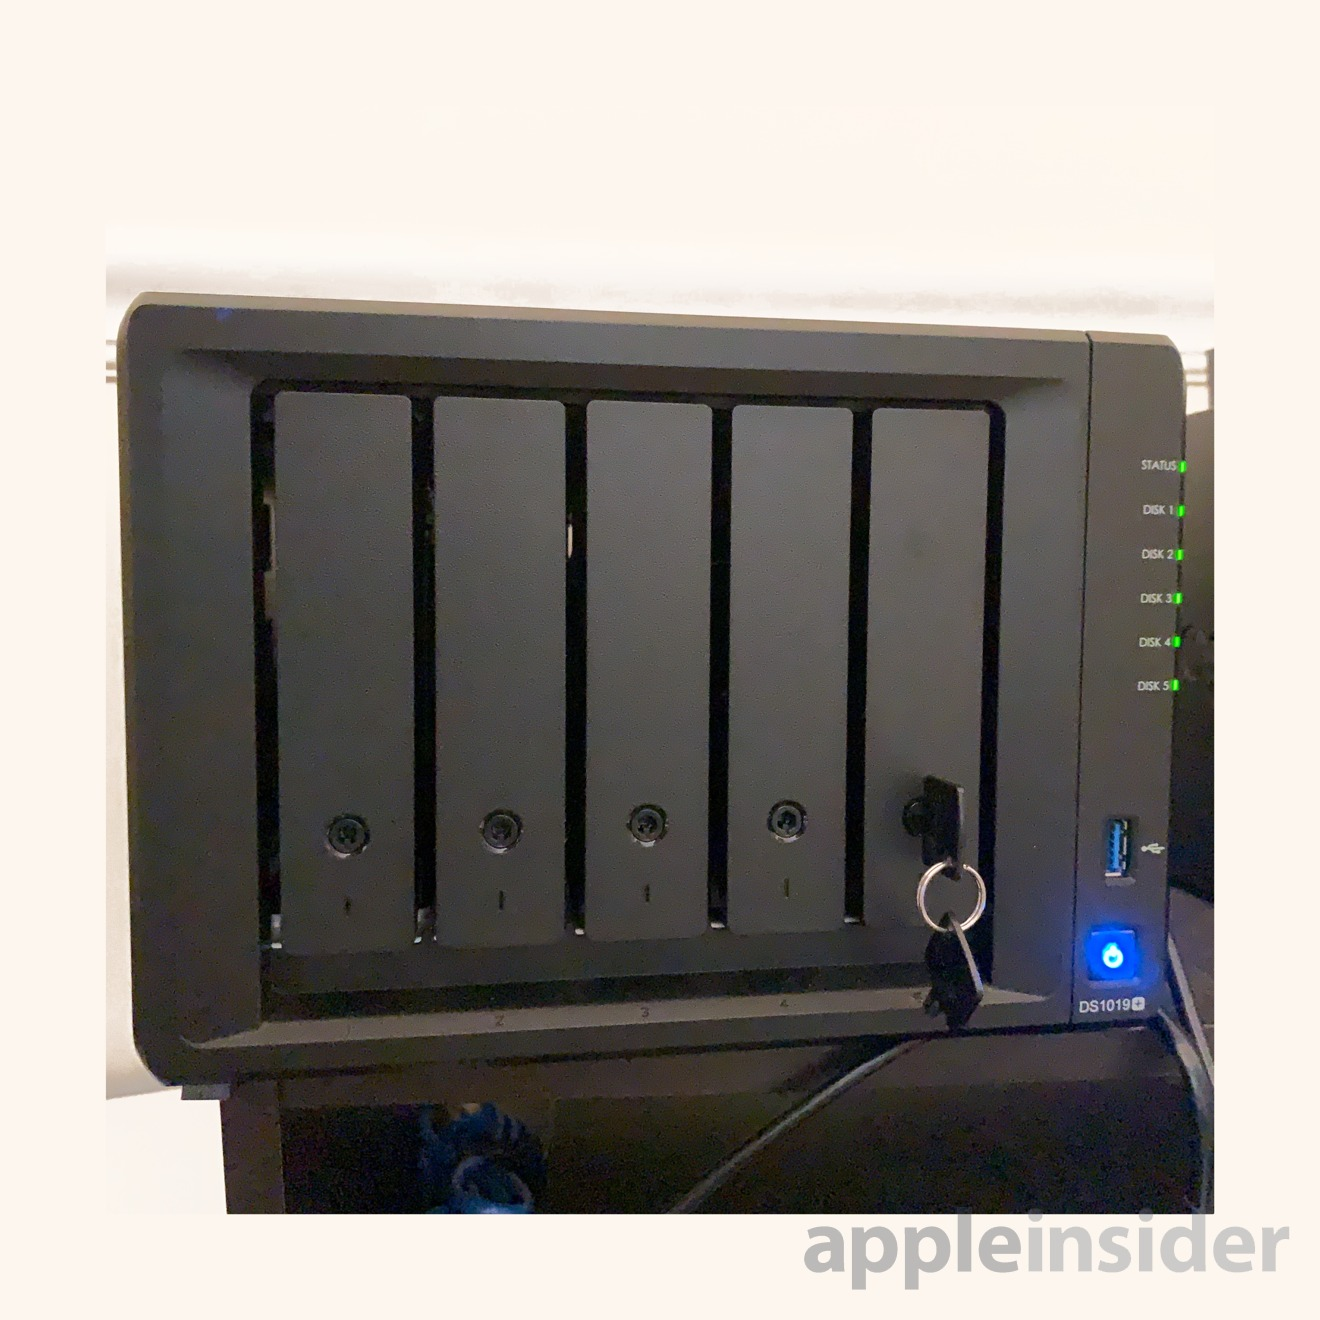 Review: Synology D1019+ Network Attached Storage device